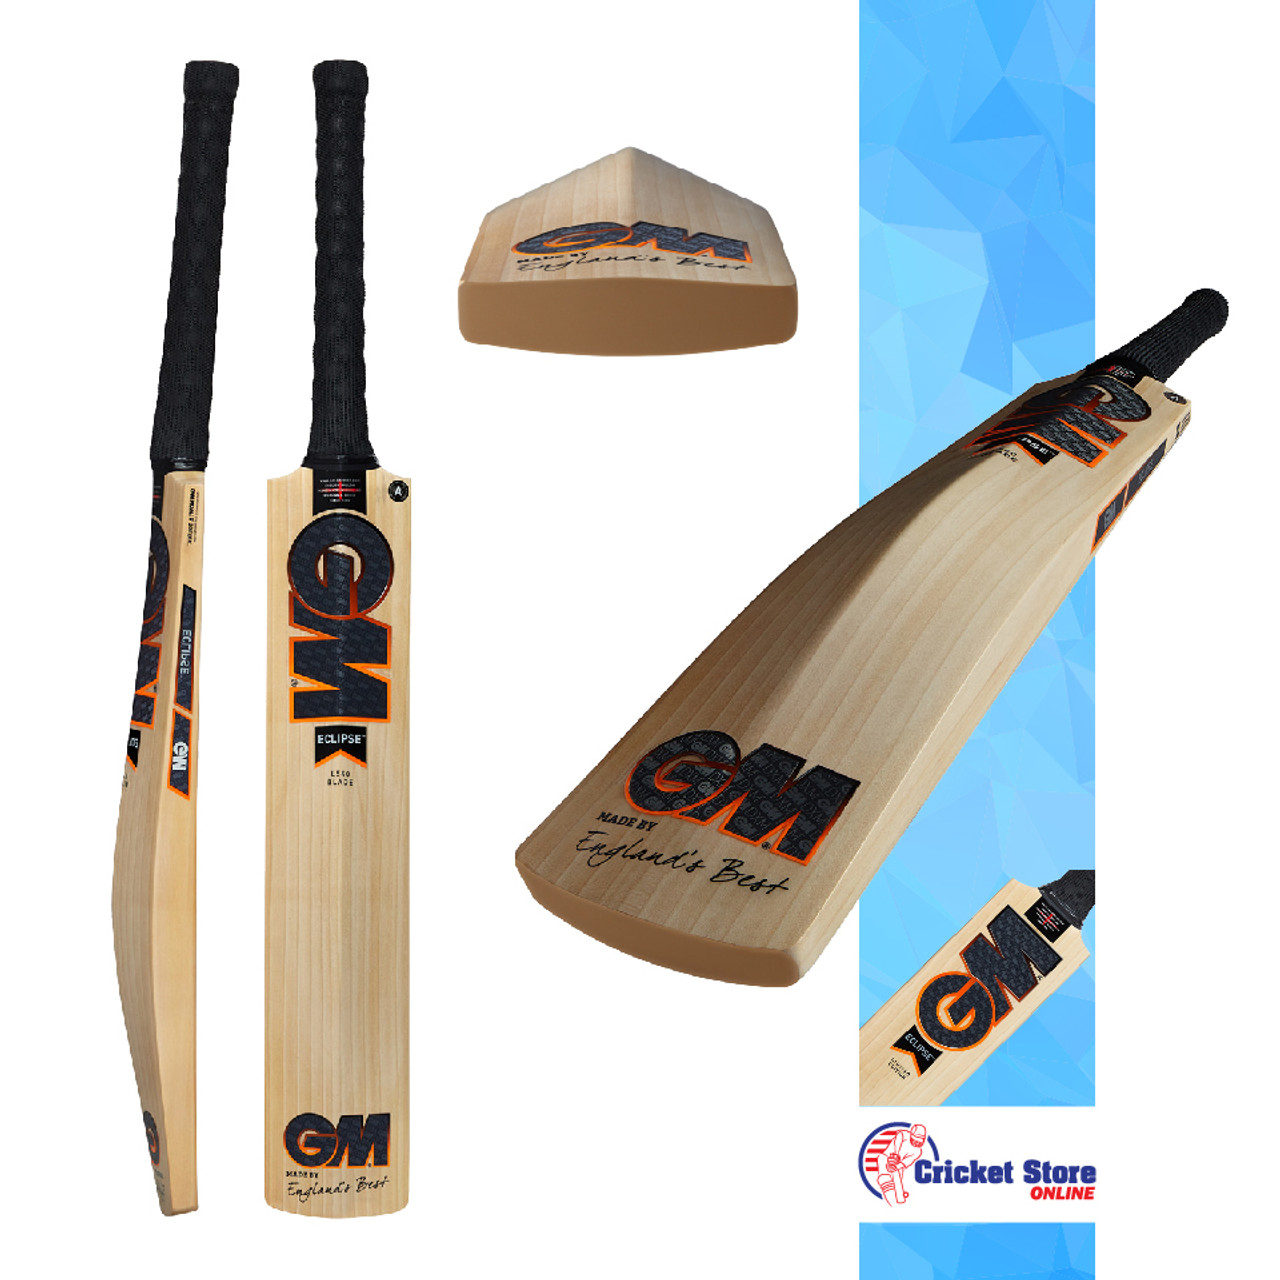 GM Eclipse Cricket Bats 2021